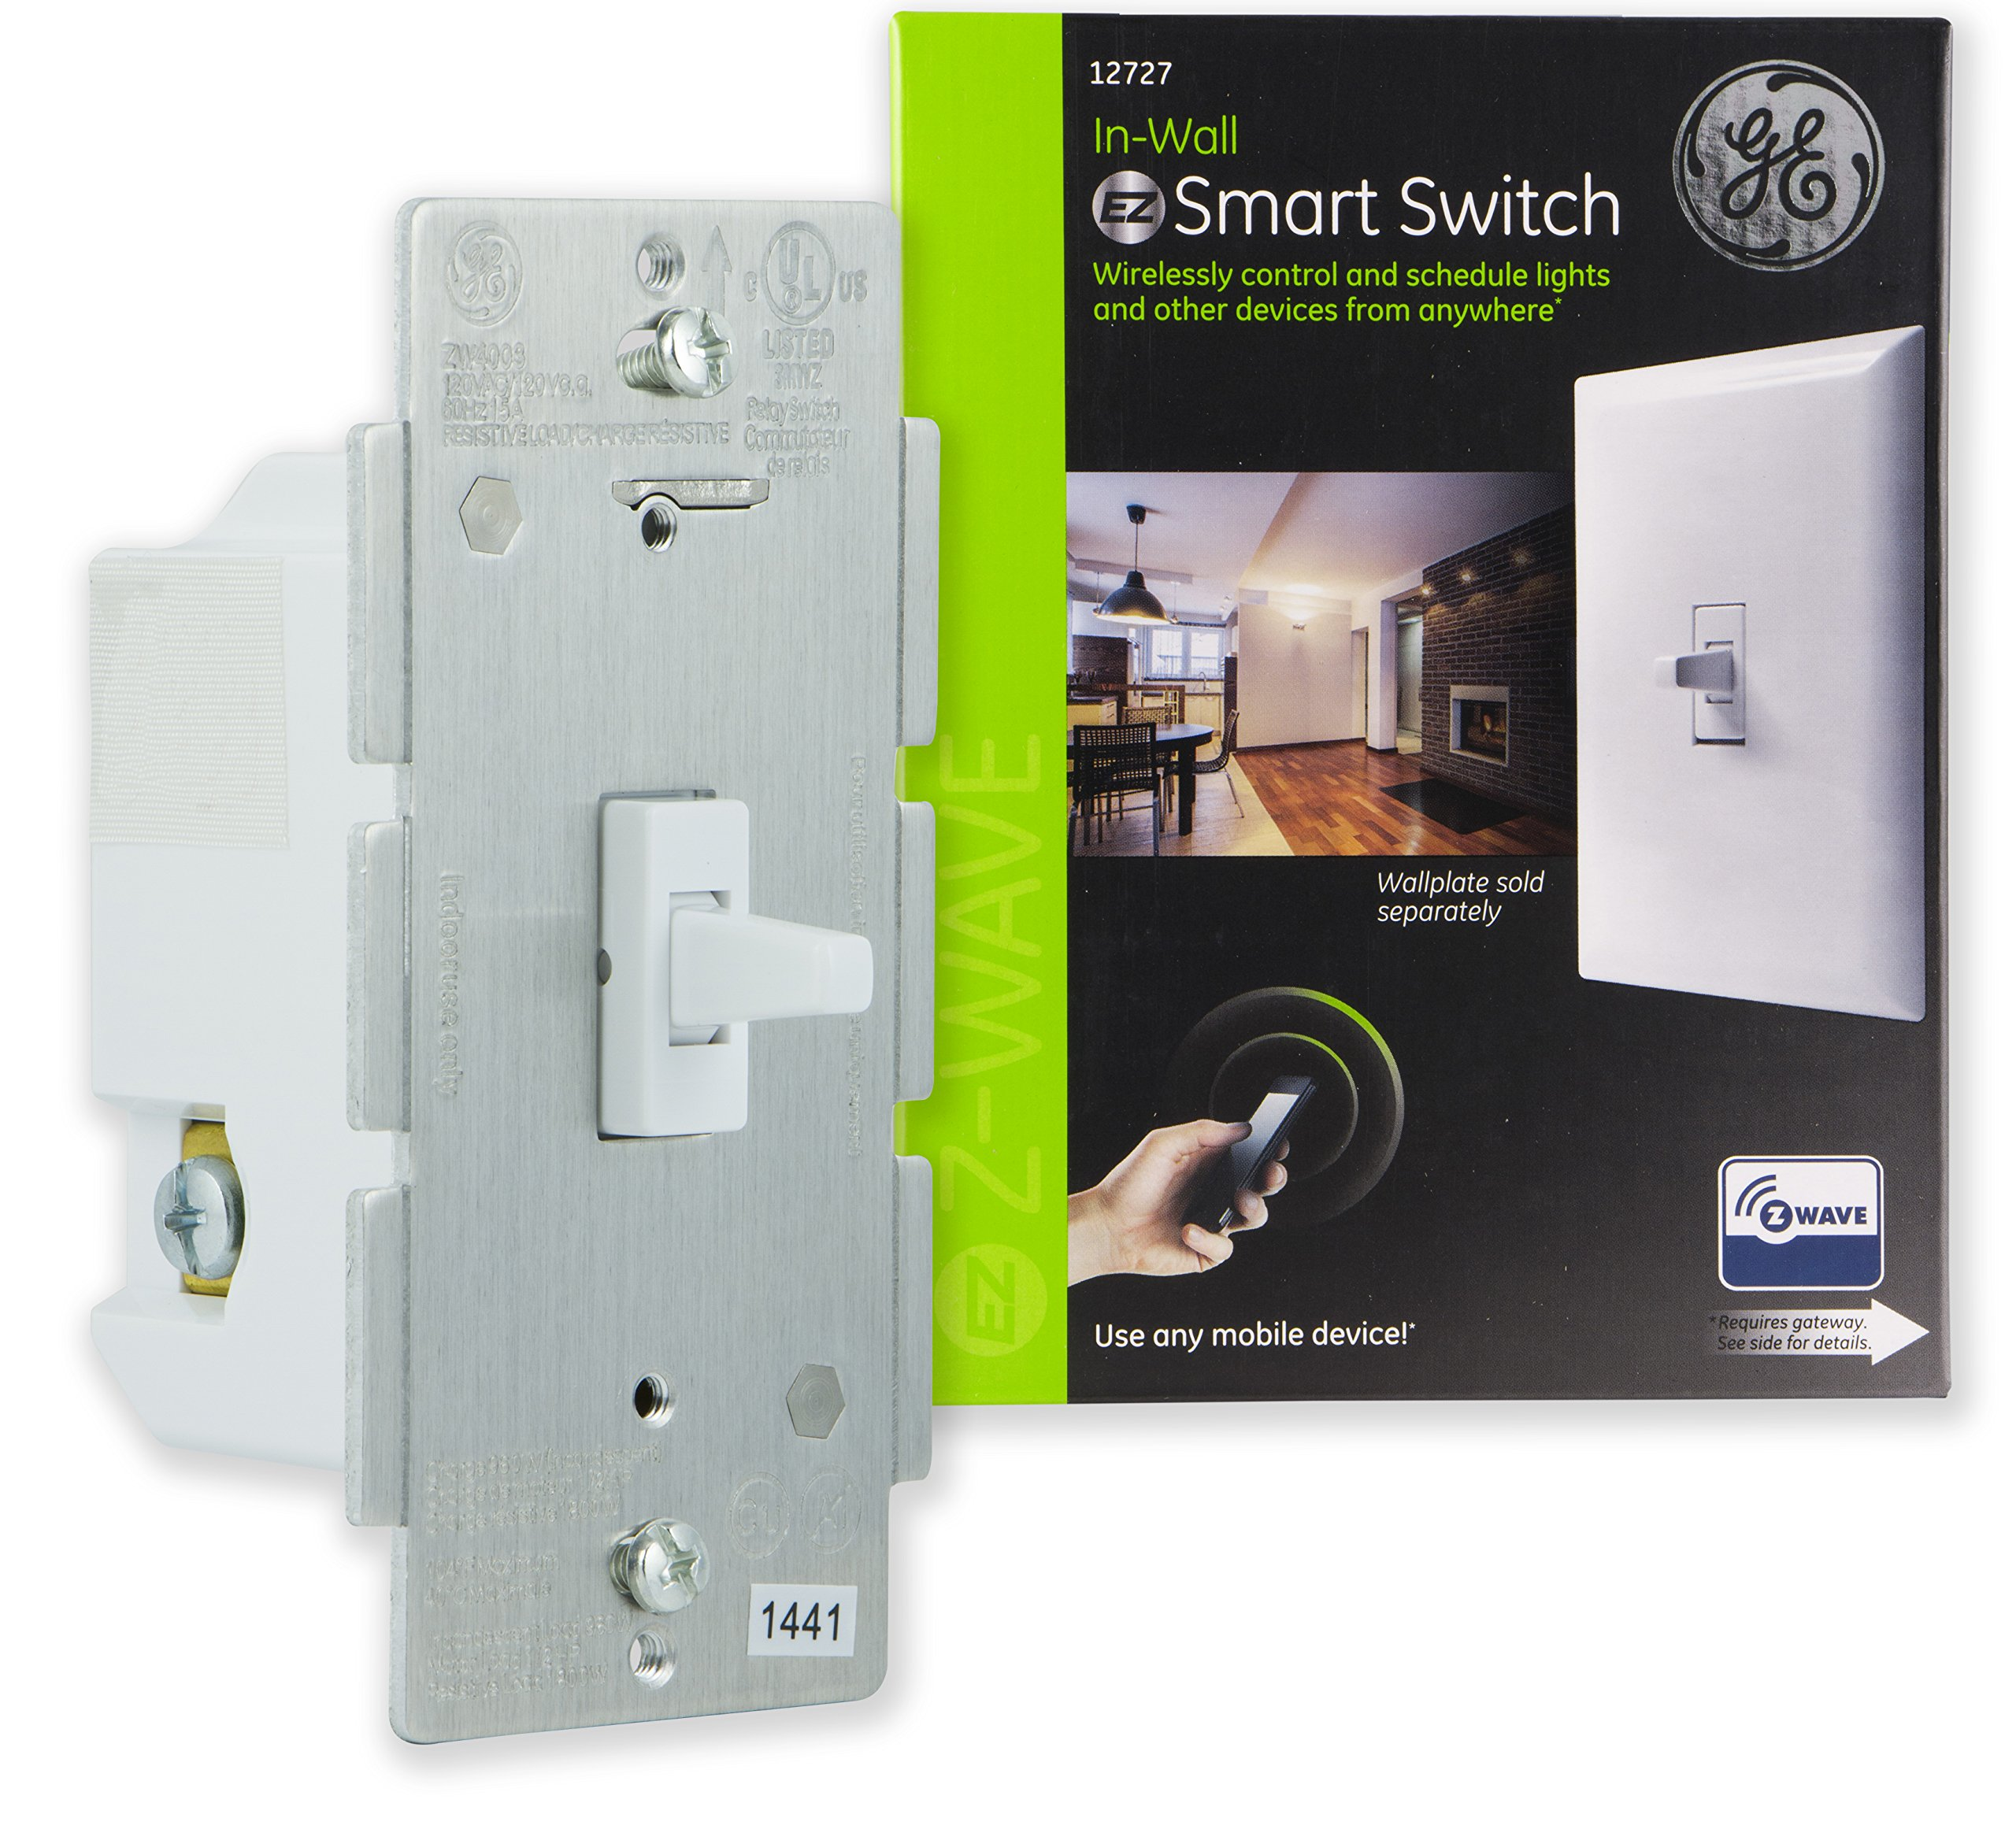 GE Z-Wave Wireless Smart Lighting Control Light Switch, Toggle Style, On/Off, In-Wall, White, Repeater & Range Extender, Zwave Hub Required- Works with SmartThings Wink and Alexa, 12727